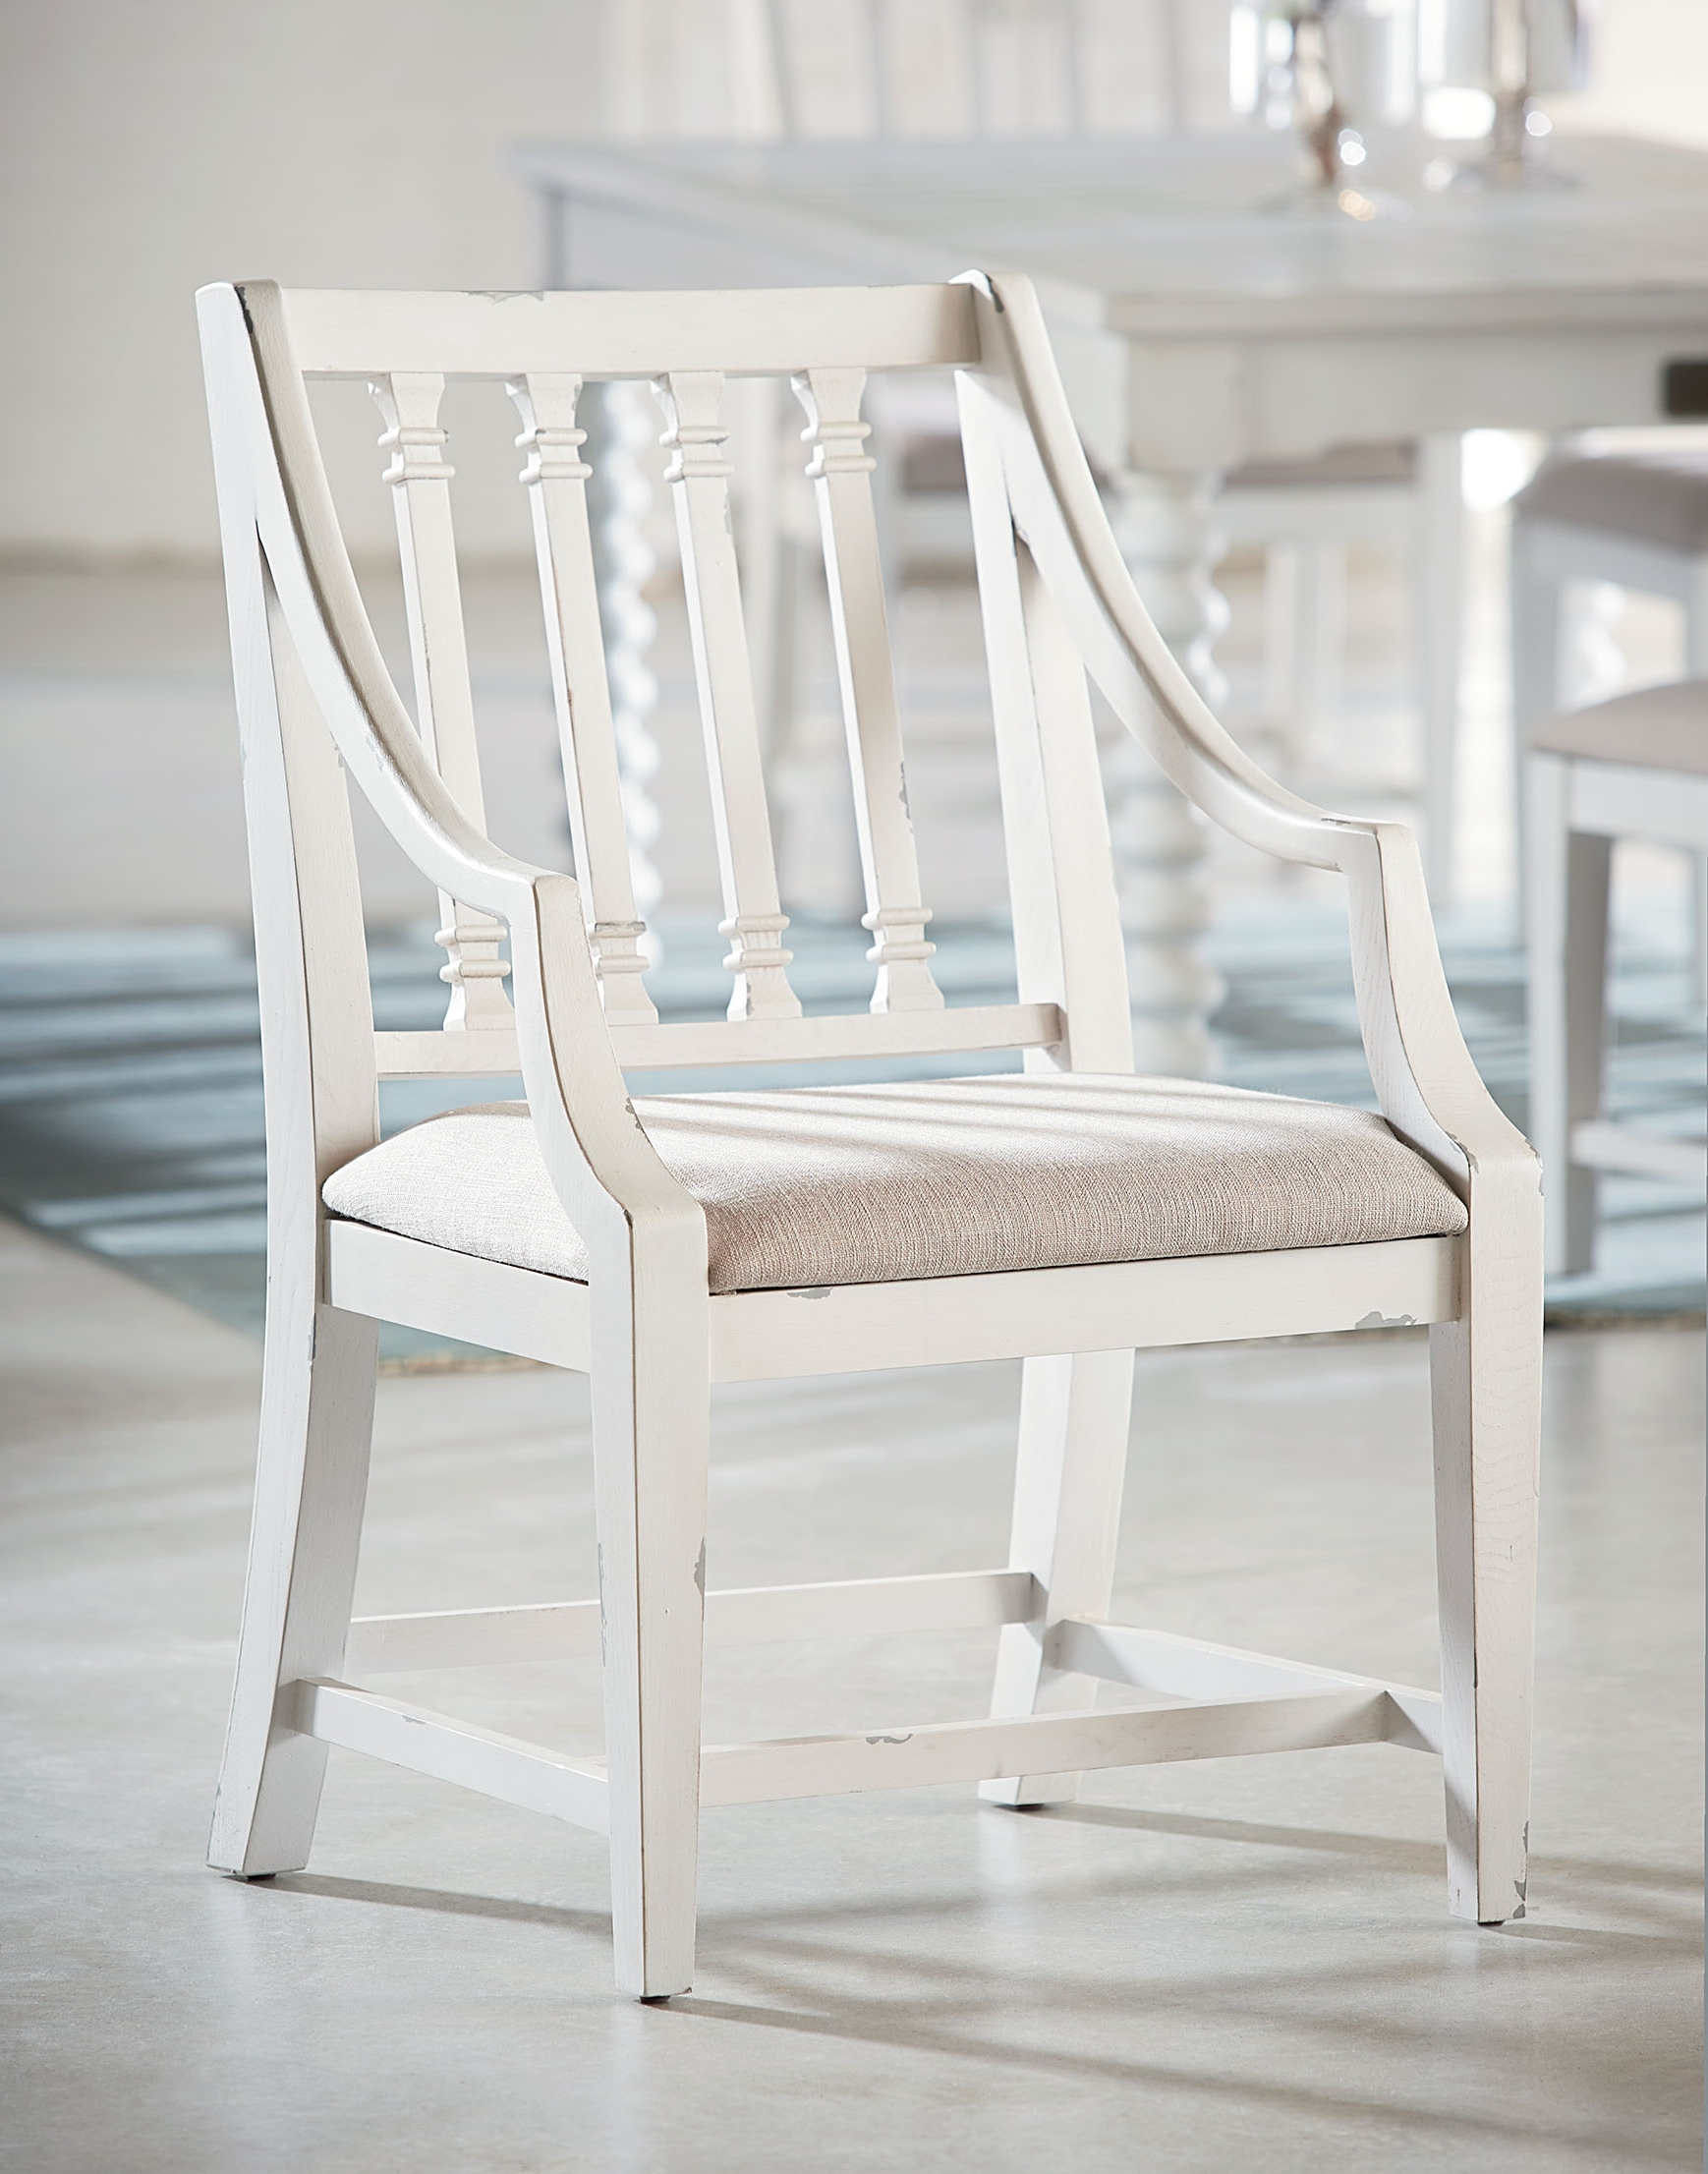 Magnolia Home Revival Jo's White Arm Chairs Throughout Most Popular Revival Arm Chair – Magnolia Home (View 8 of 20)